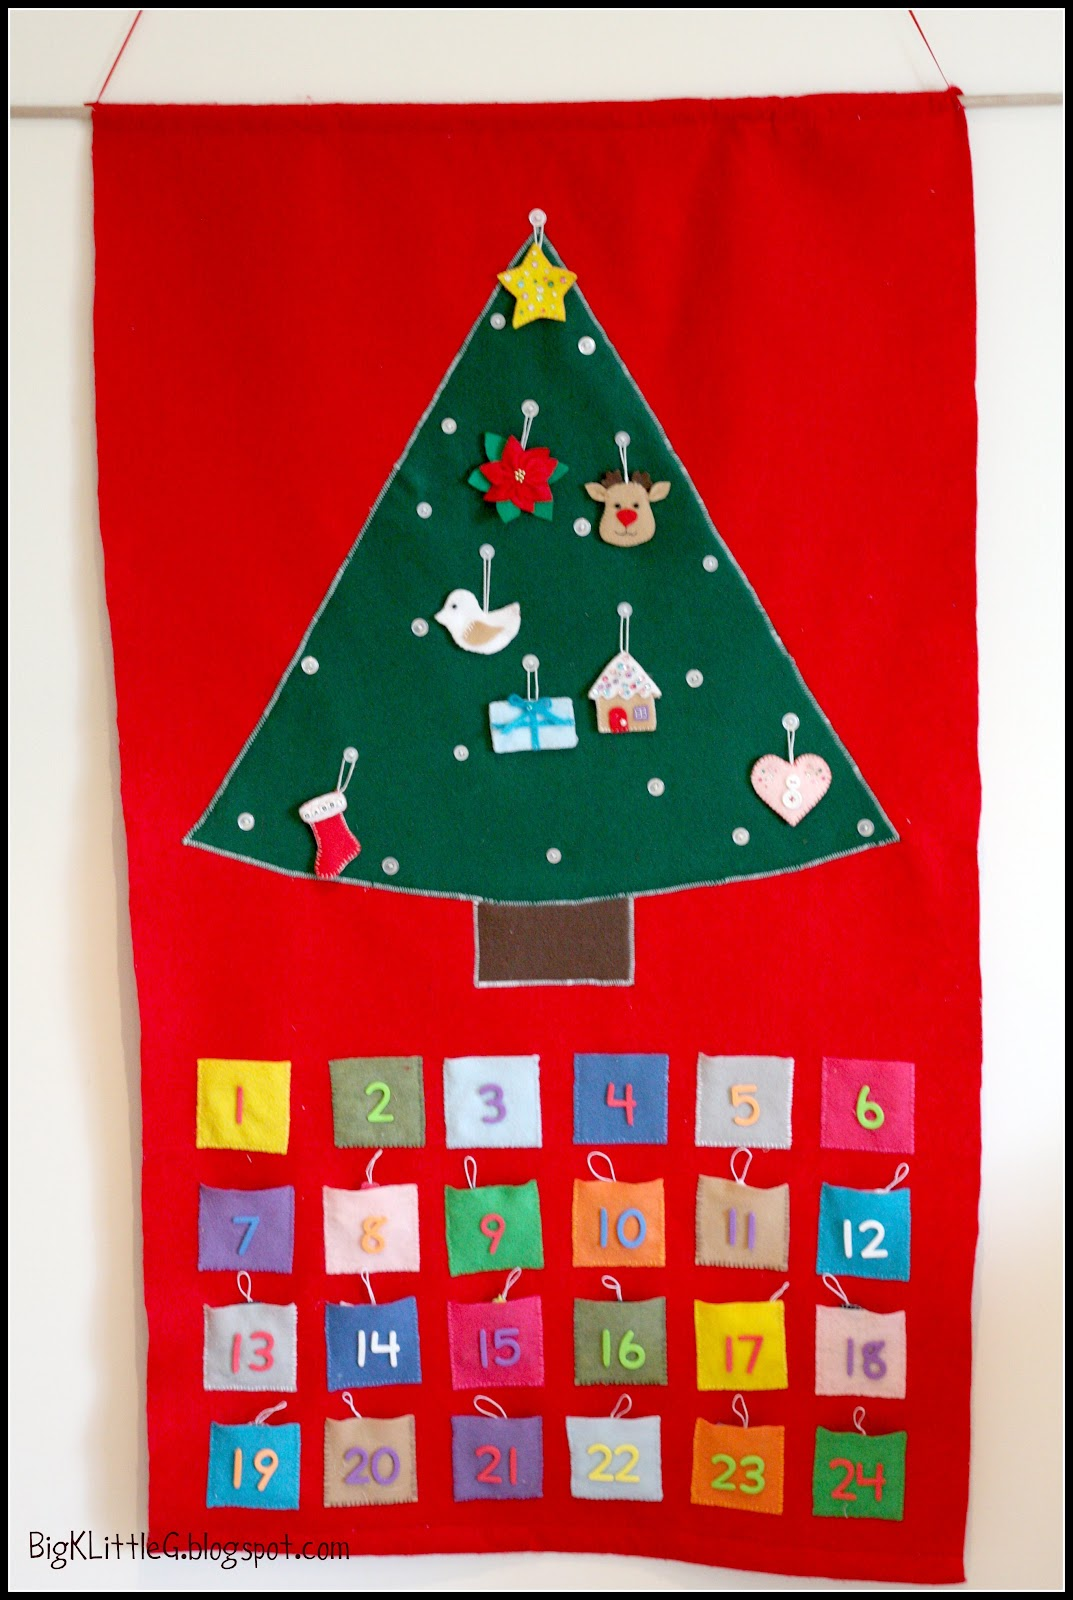 Big k little g diy felt christmas tree advent calendar for Diy christmas advent calendar ideas